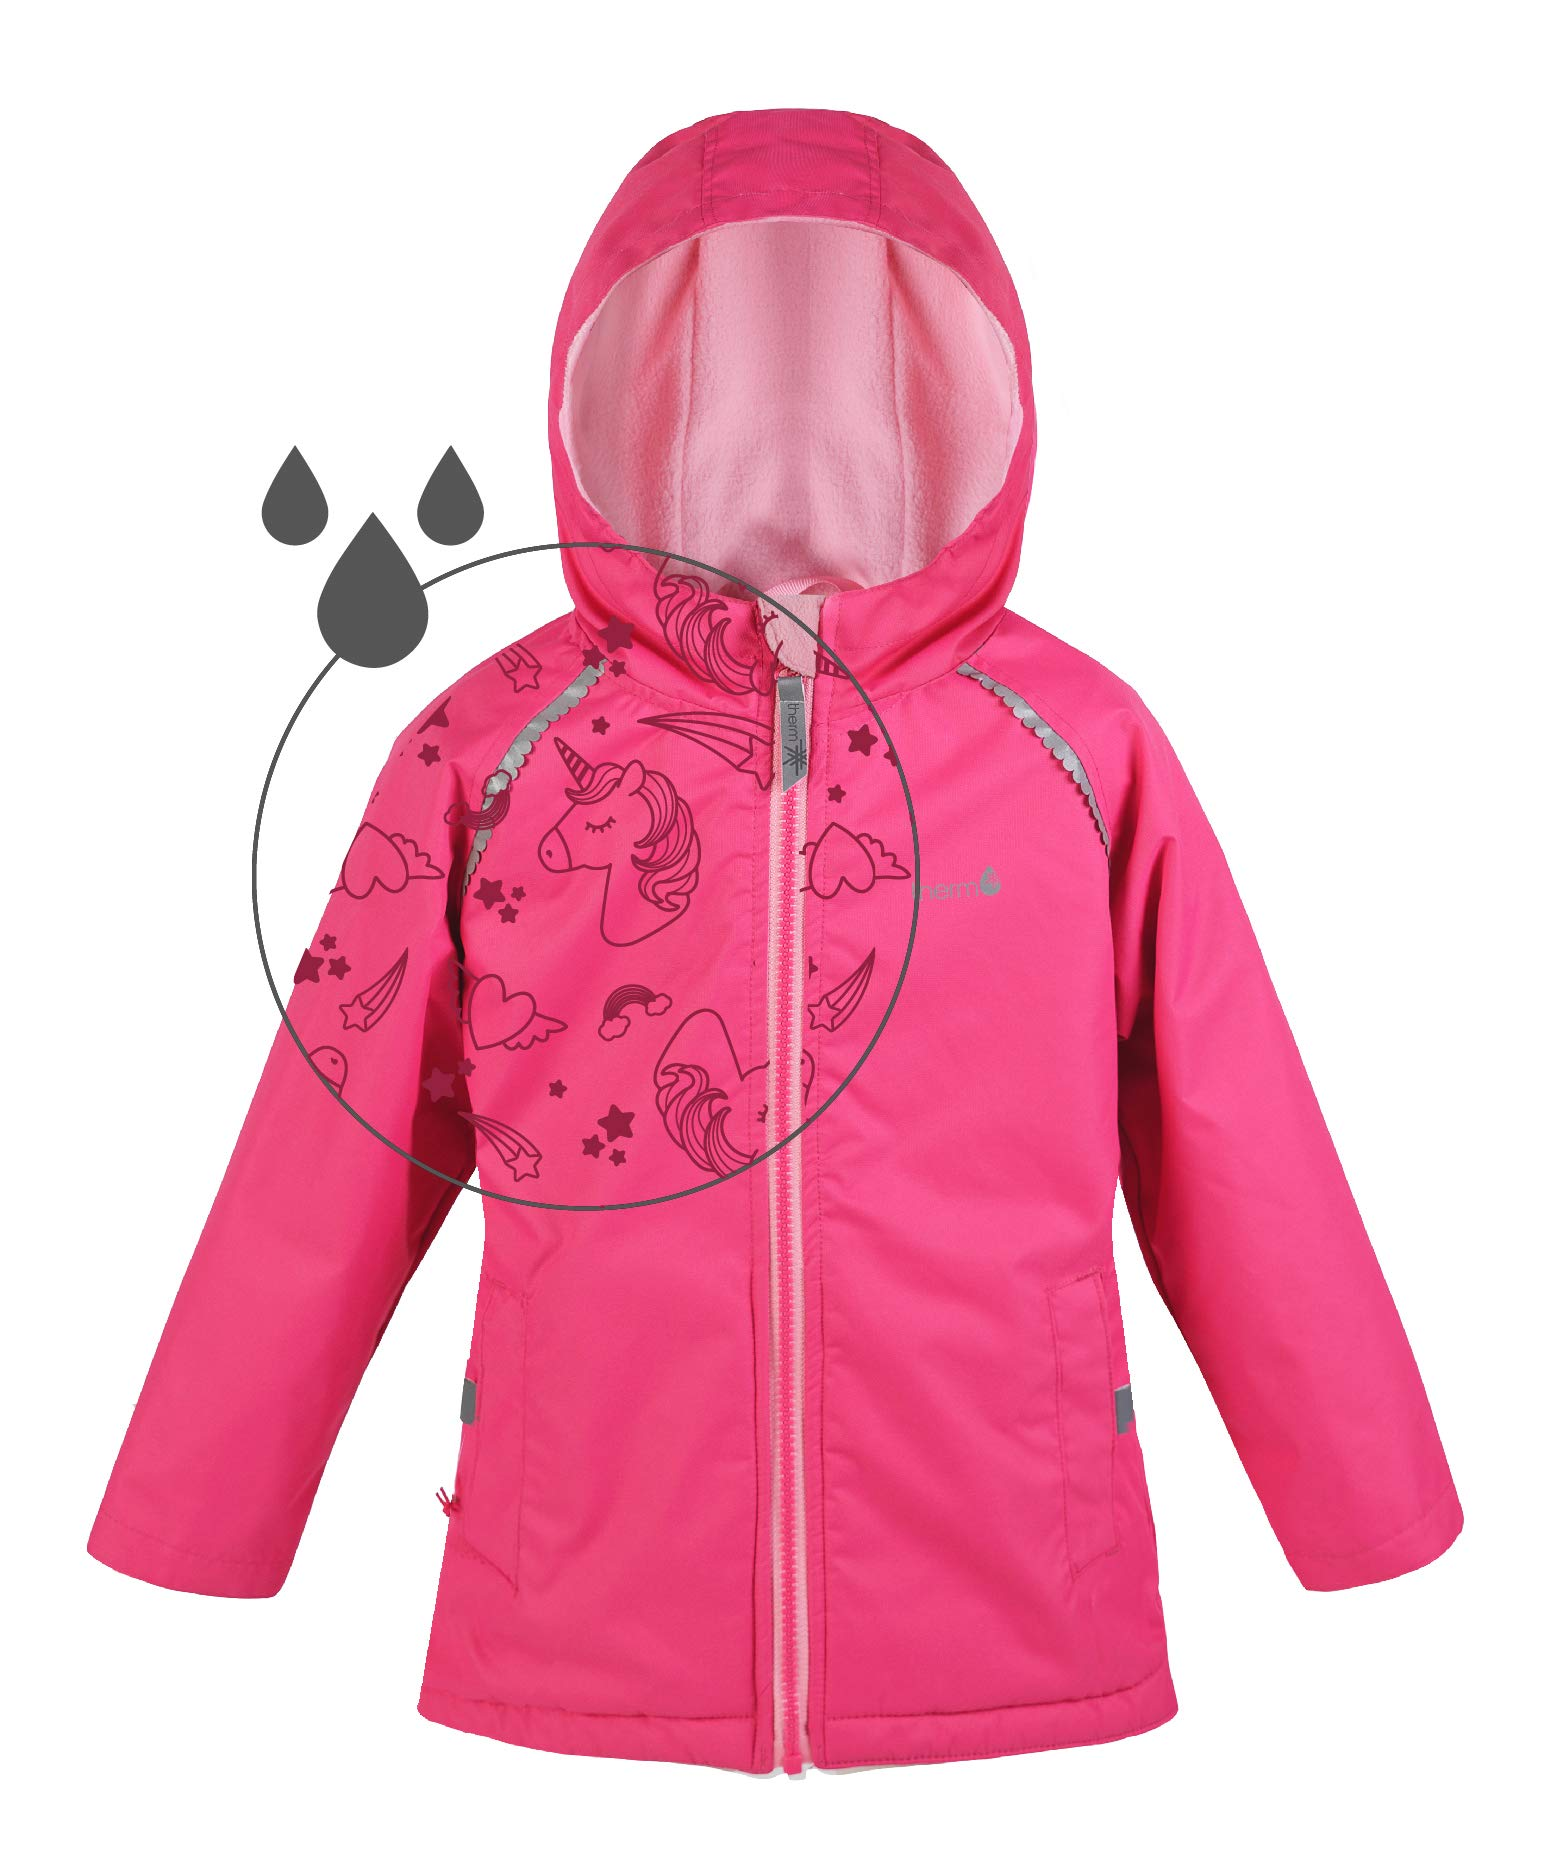 Therm Girls Rain Jacket, Lightweight Raincoat with Magic Pattern - Fleece Lined - Pink Purple Aqua - Toddler Kids Youth (2, Raspberry Pink) by Therm